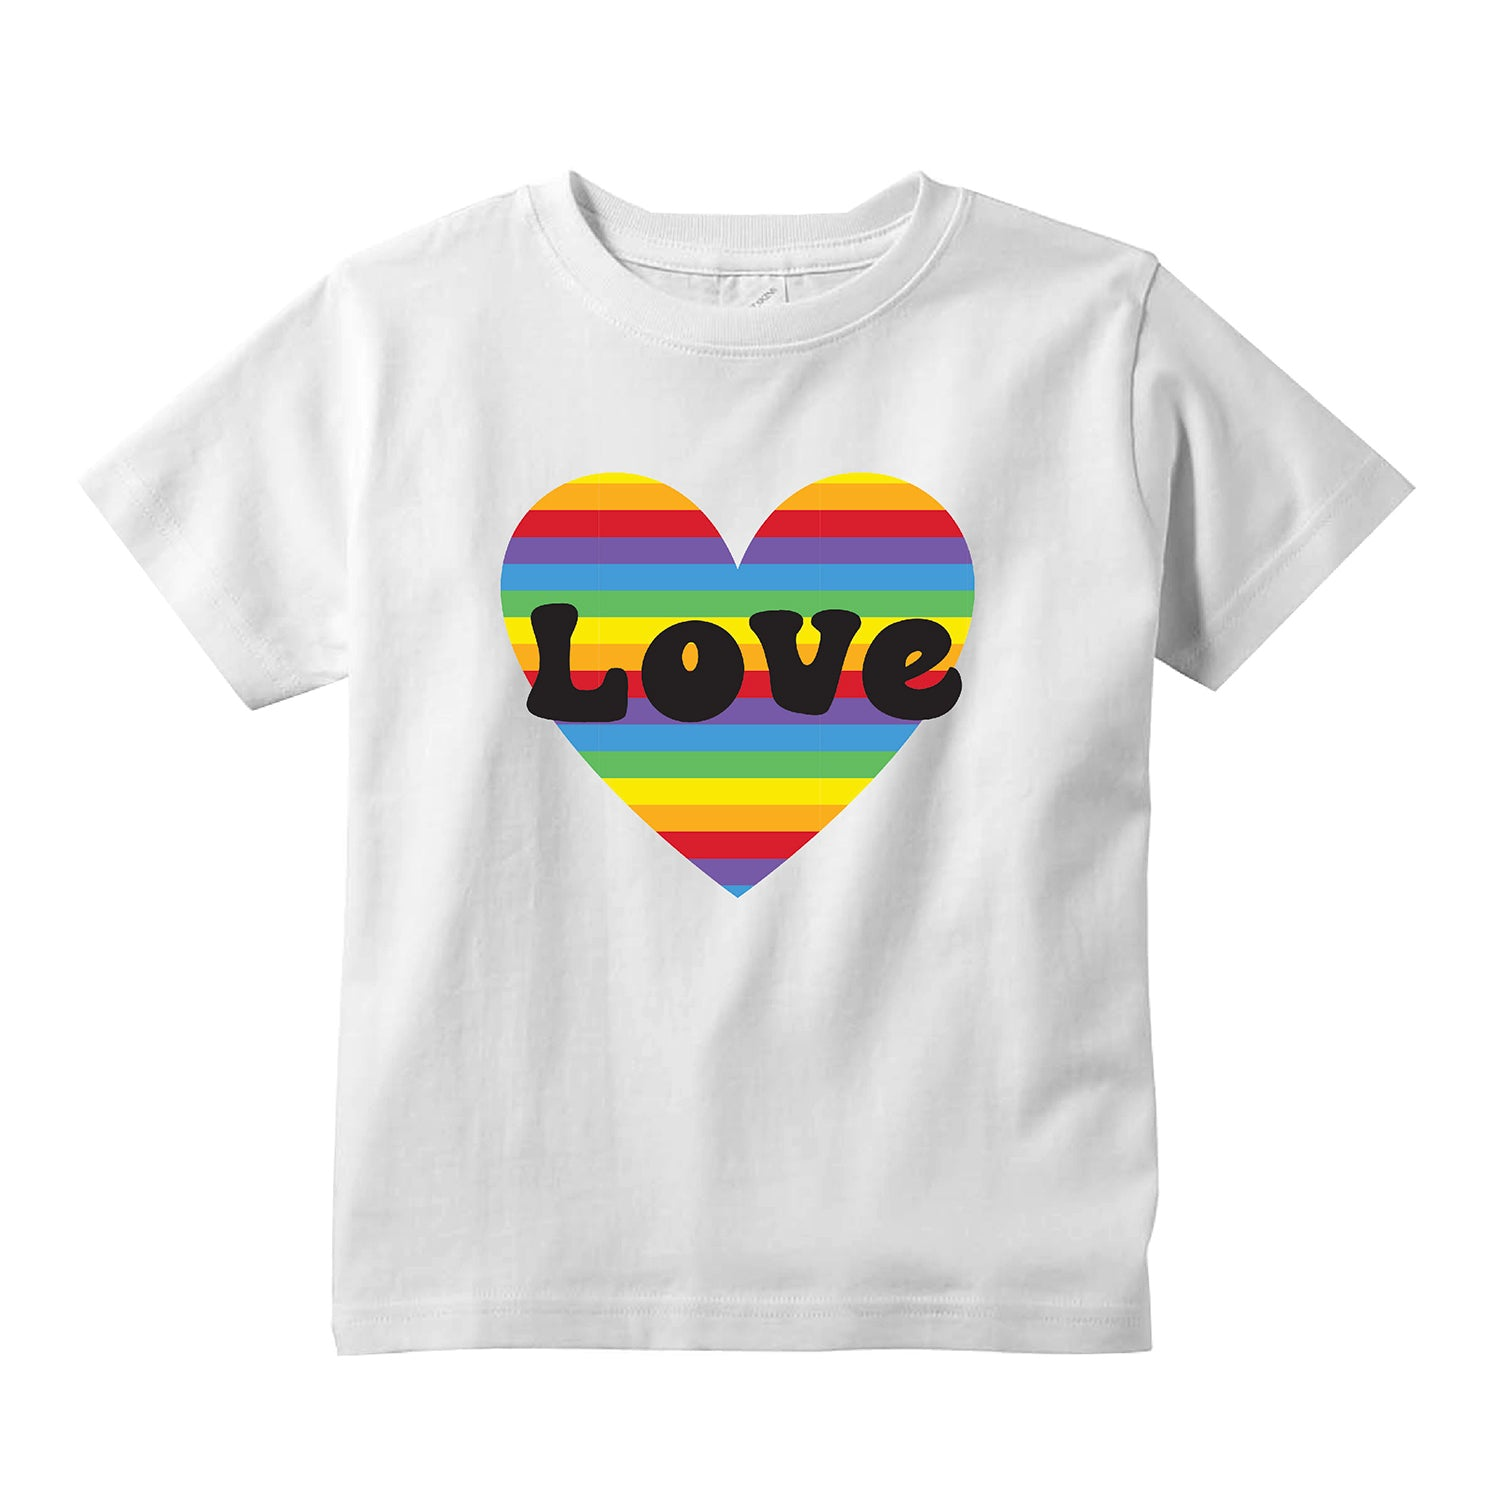 Love Rainbow Heart Kids T-Shirt + FREE Love is Love Pride Face Mask